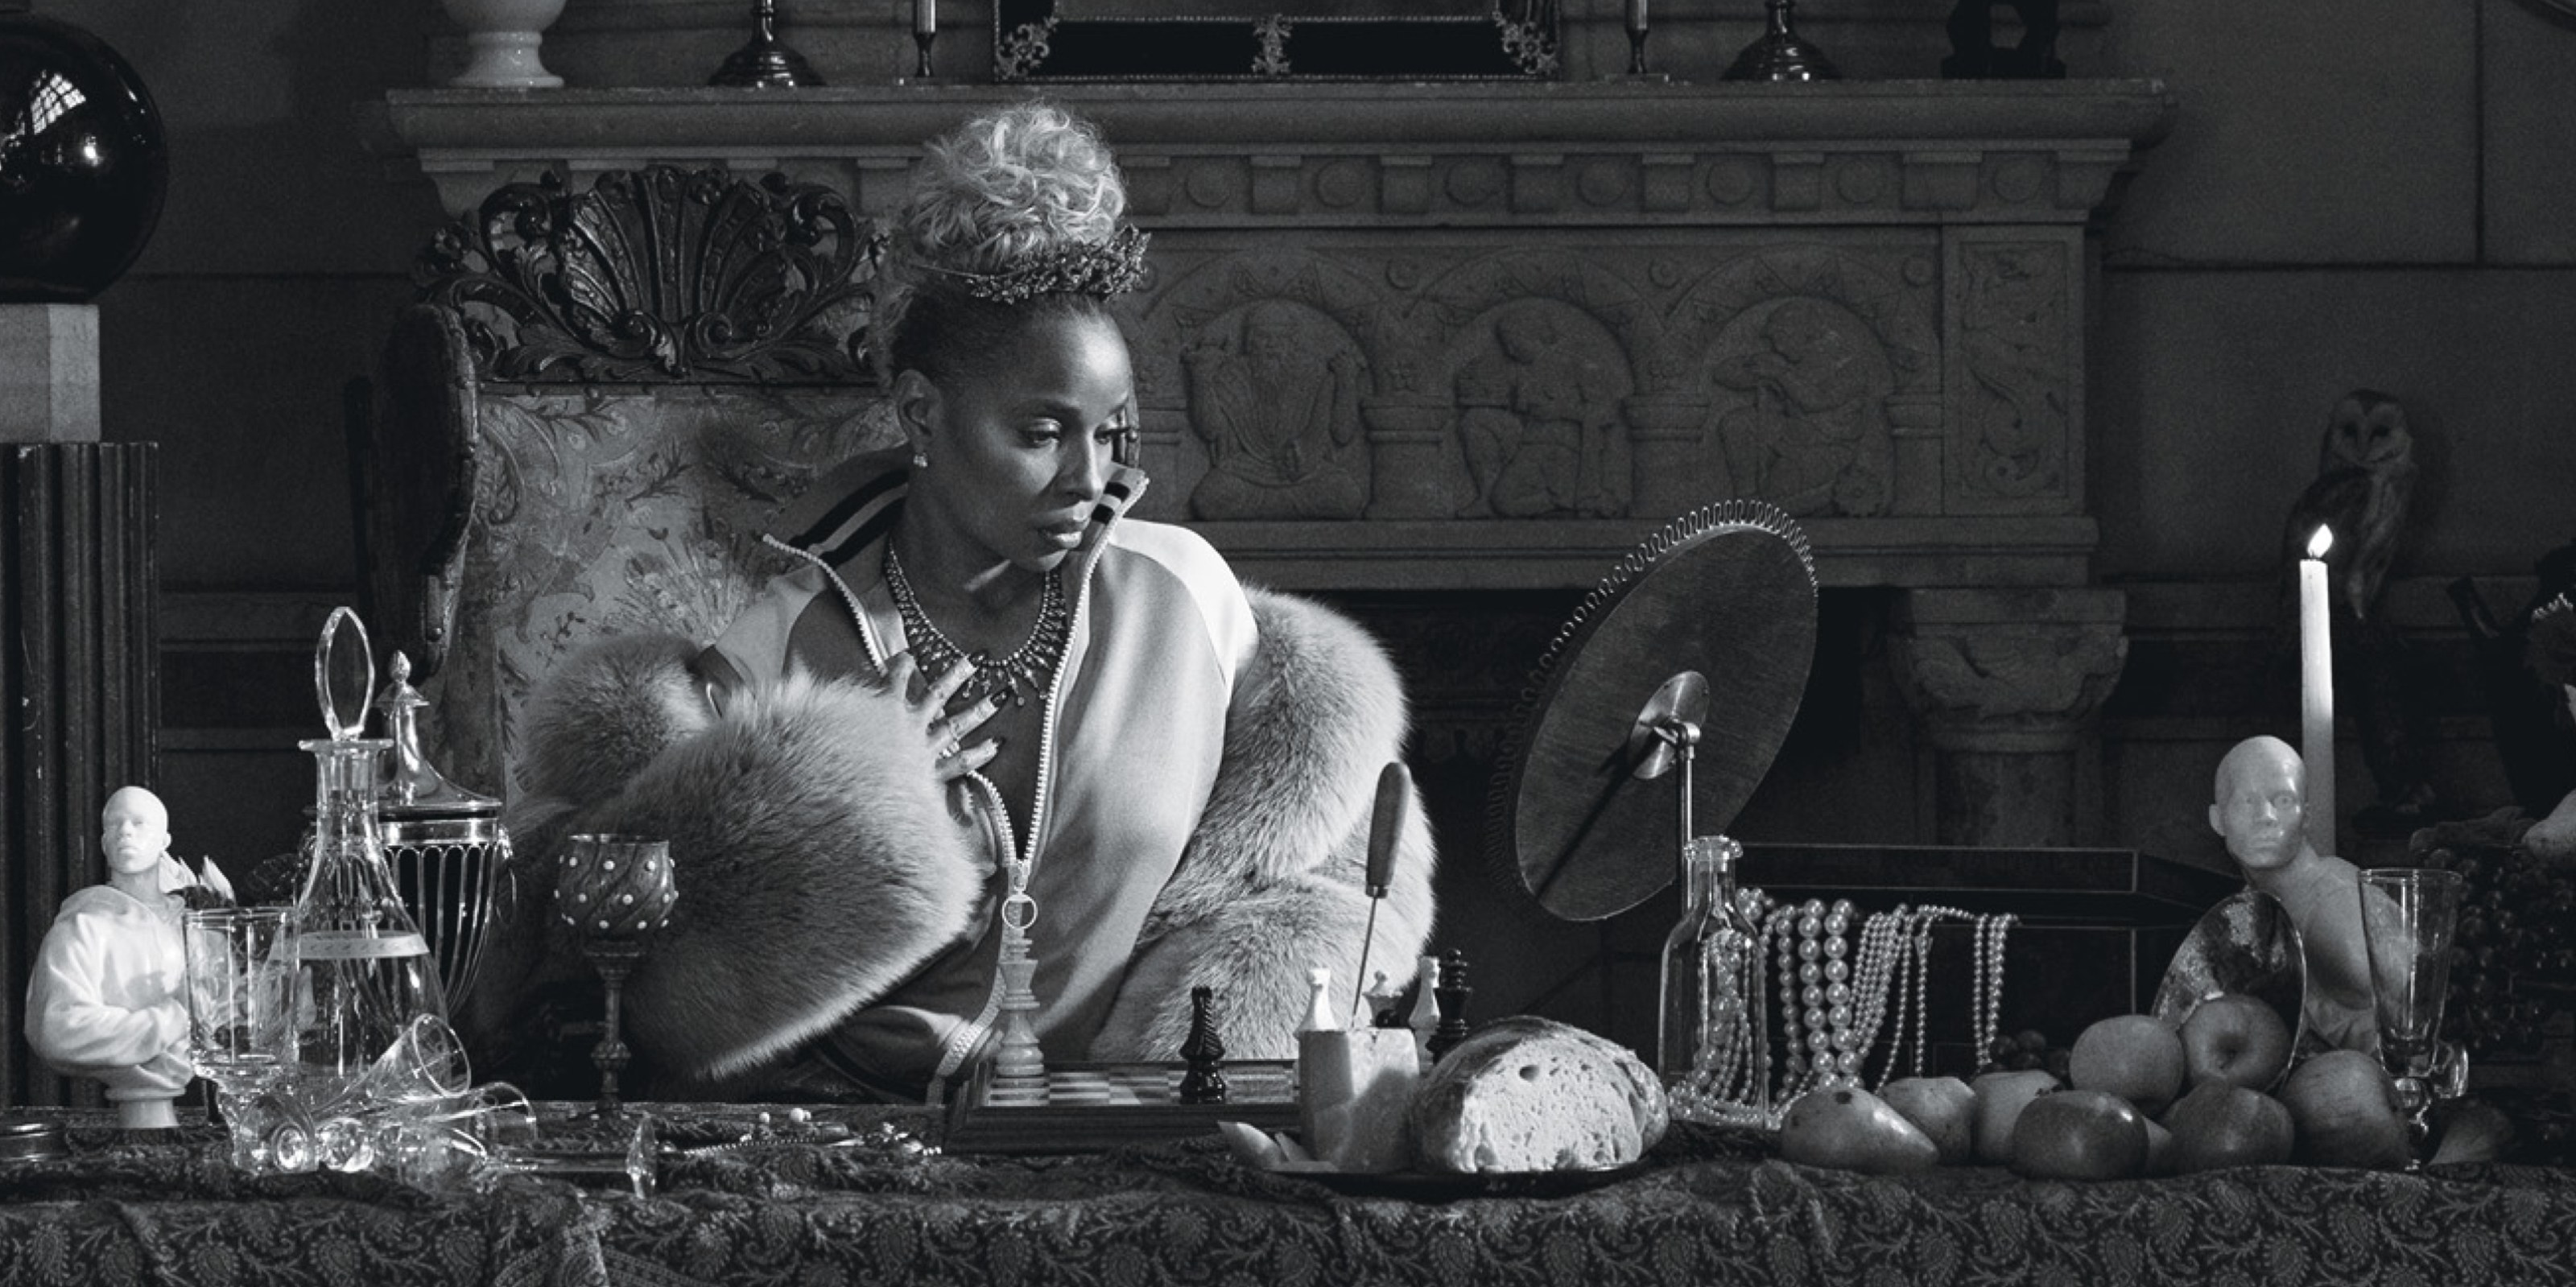 Mary J. Blige, Carrie Mae Weems, African American Art, Black Art, African American Artist, Black Artist, R&B Music, Queen of R&B, KOLUMN Magazine, KOLUMN